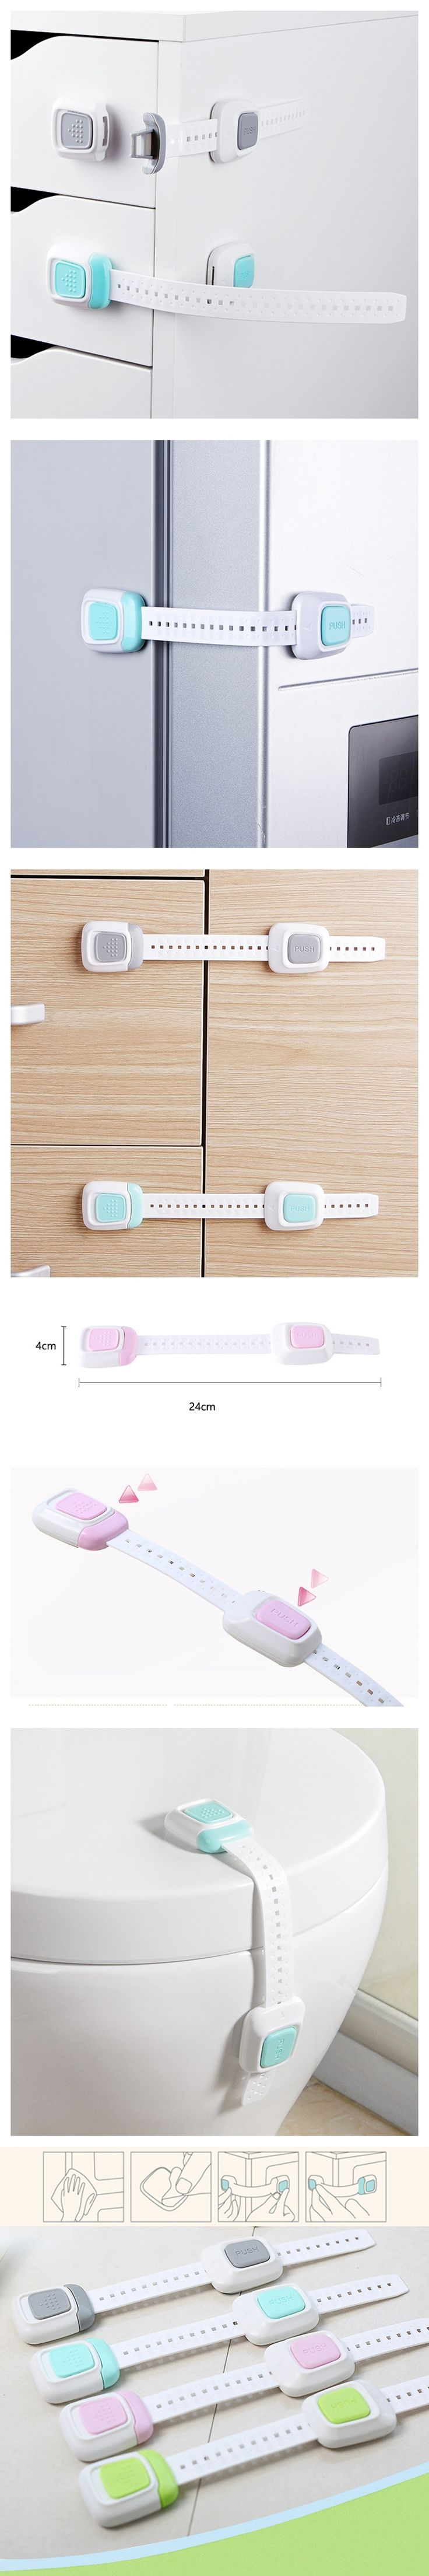 12Pcs Multi-function Double Button Children 's Security Lock Baby Protective Equipment Anti-folder Hand Refrigerator Lock